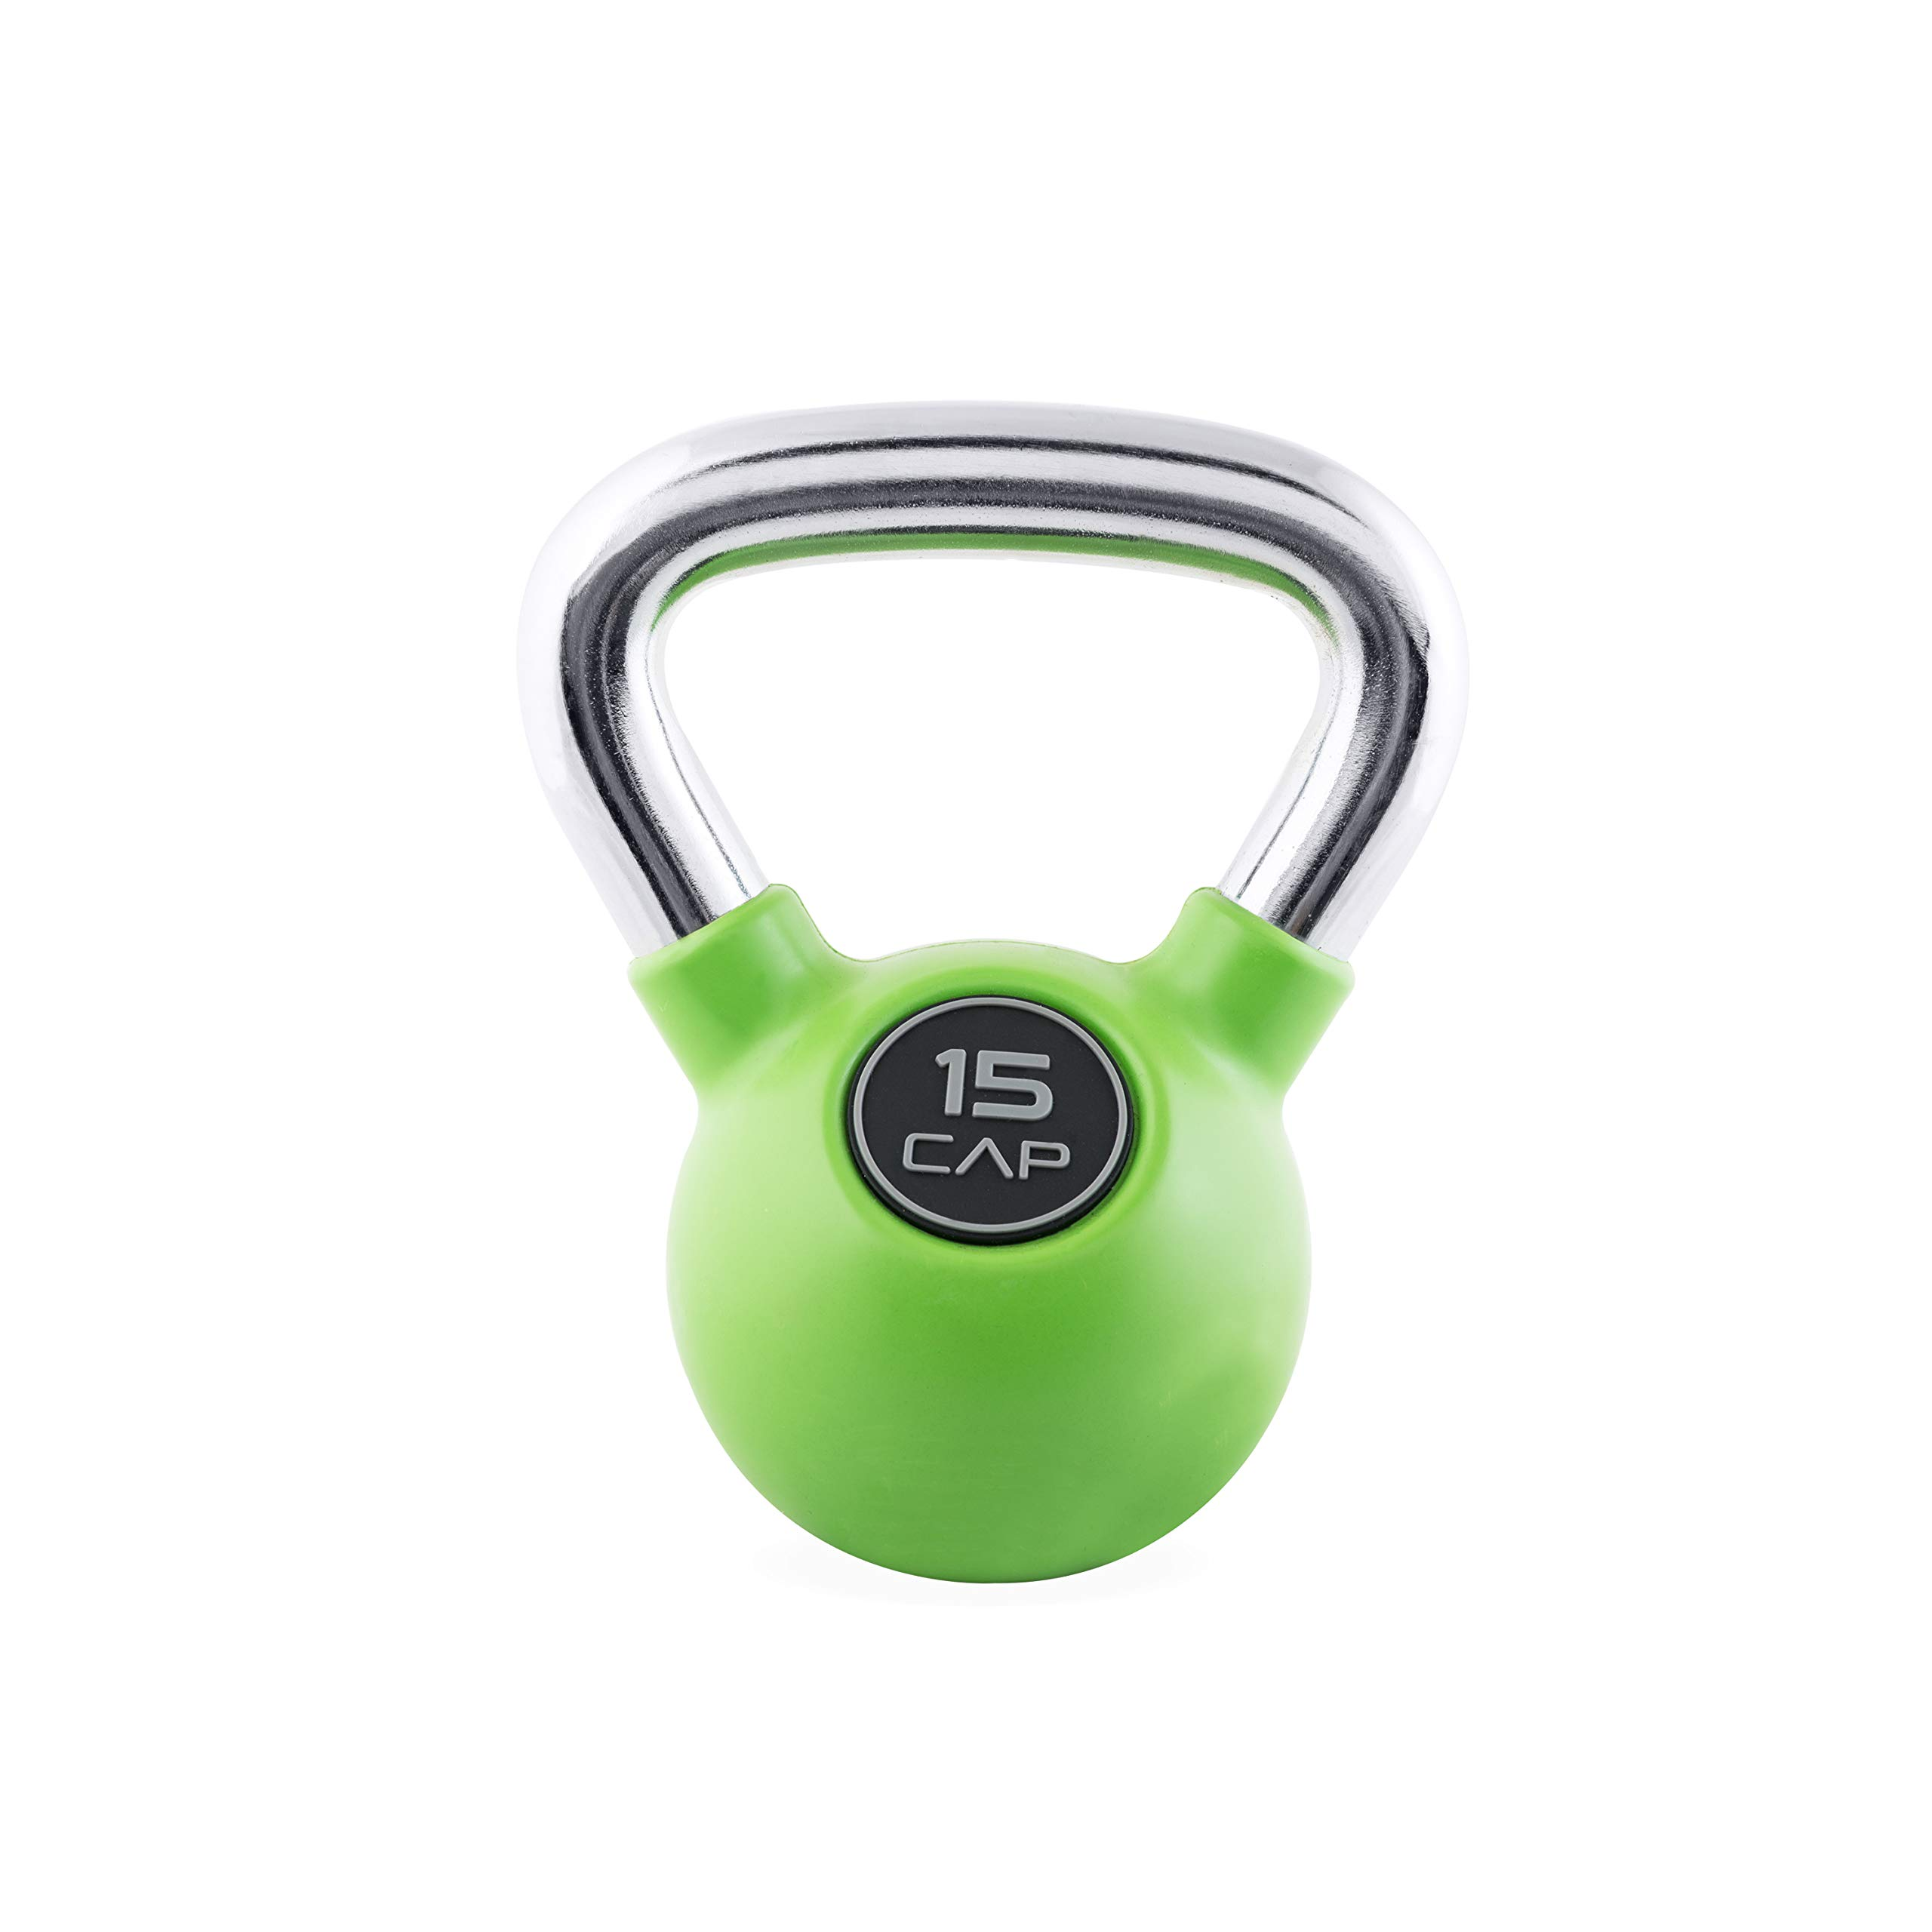 CAP Barbell Colored Rubber Coated Kettlebell with Chrome Handle, 15 lb